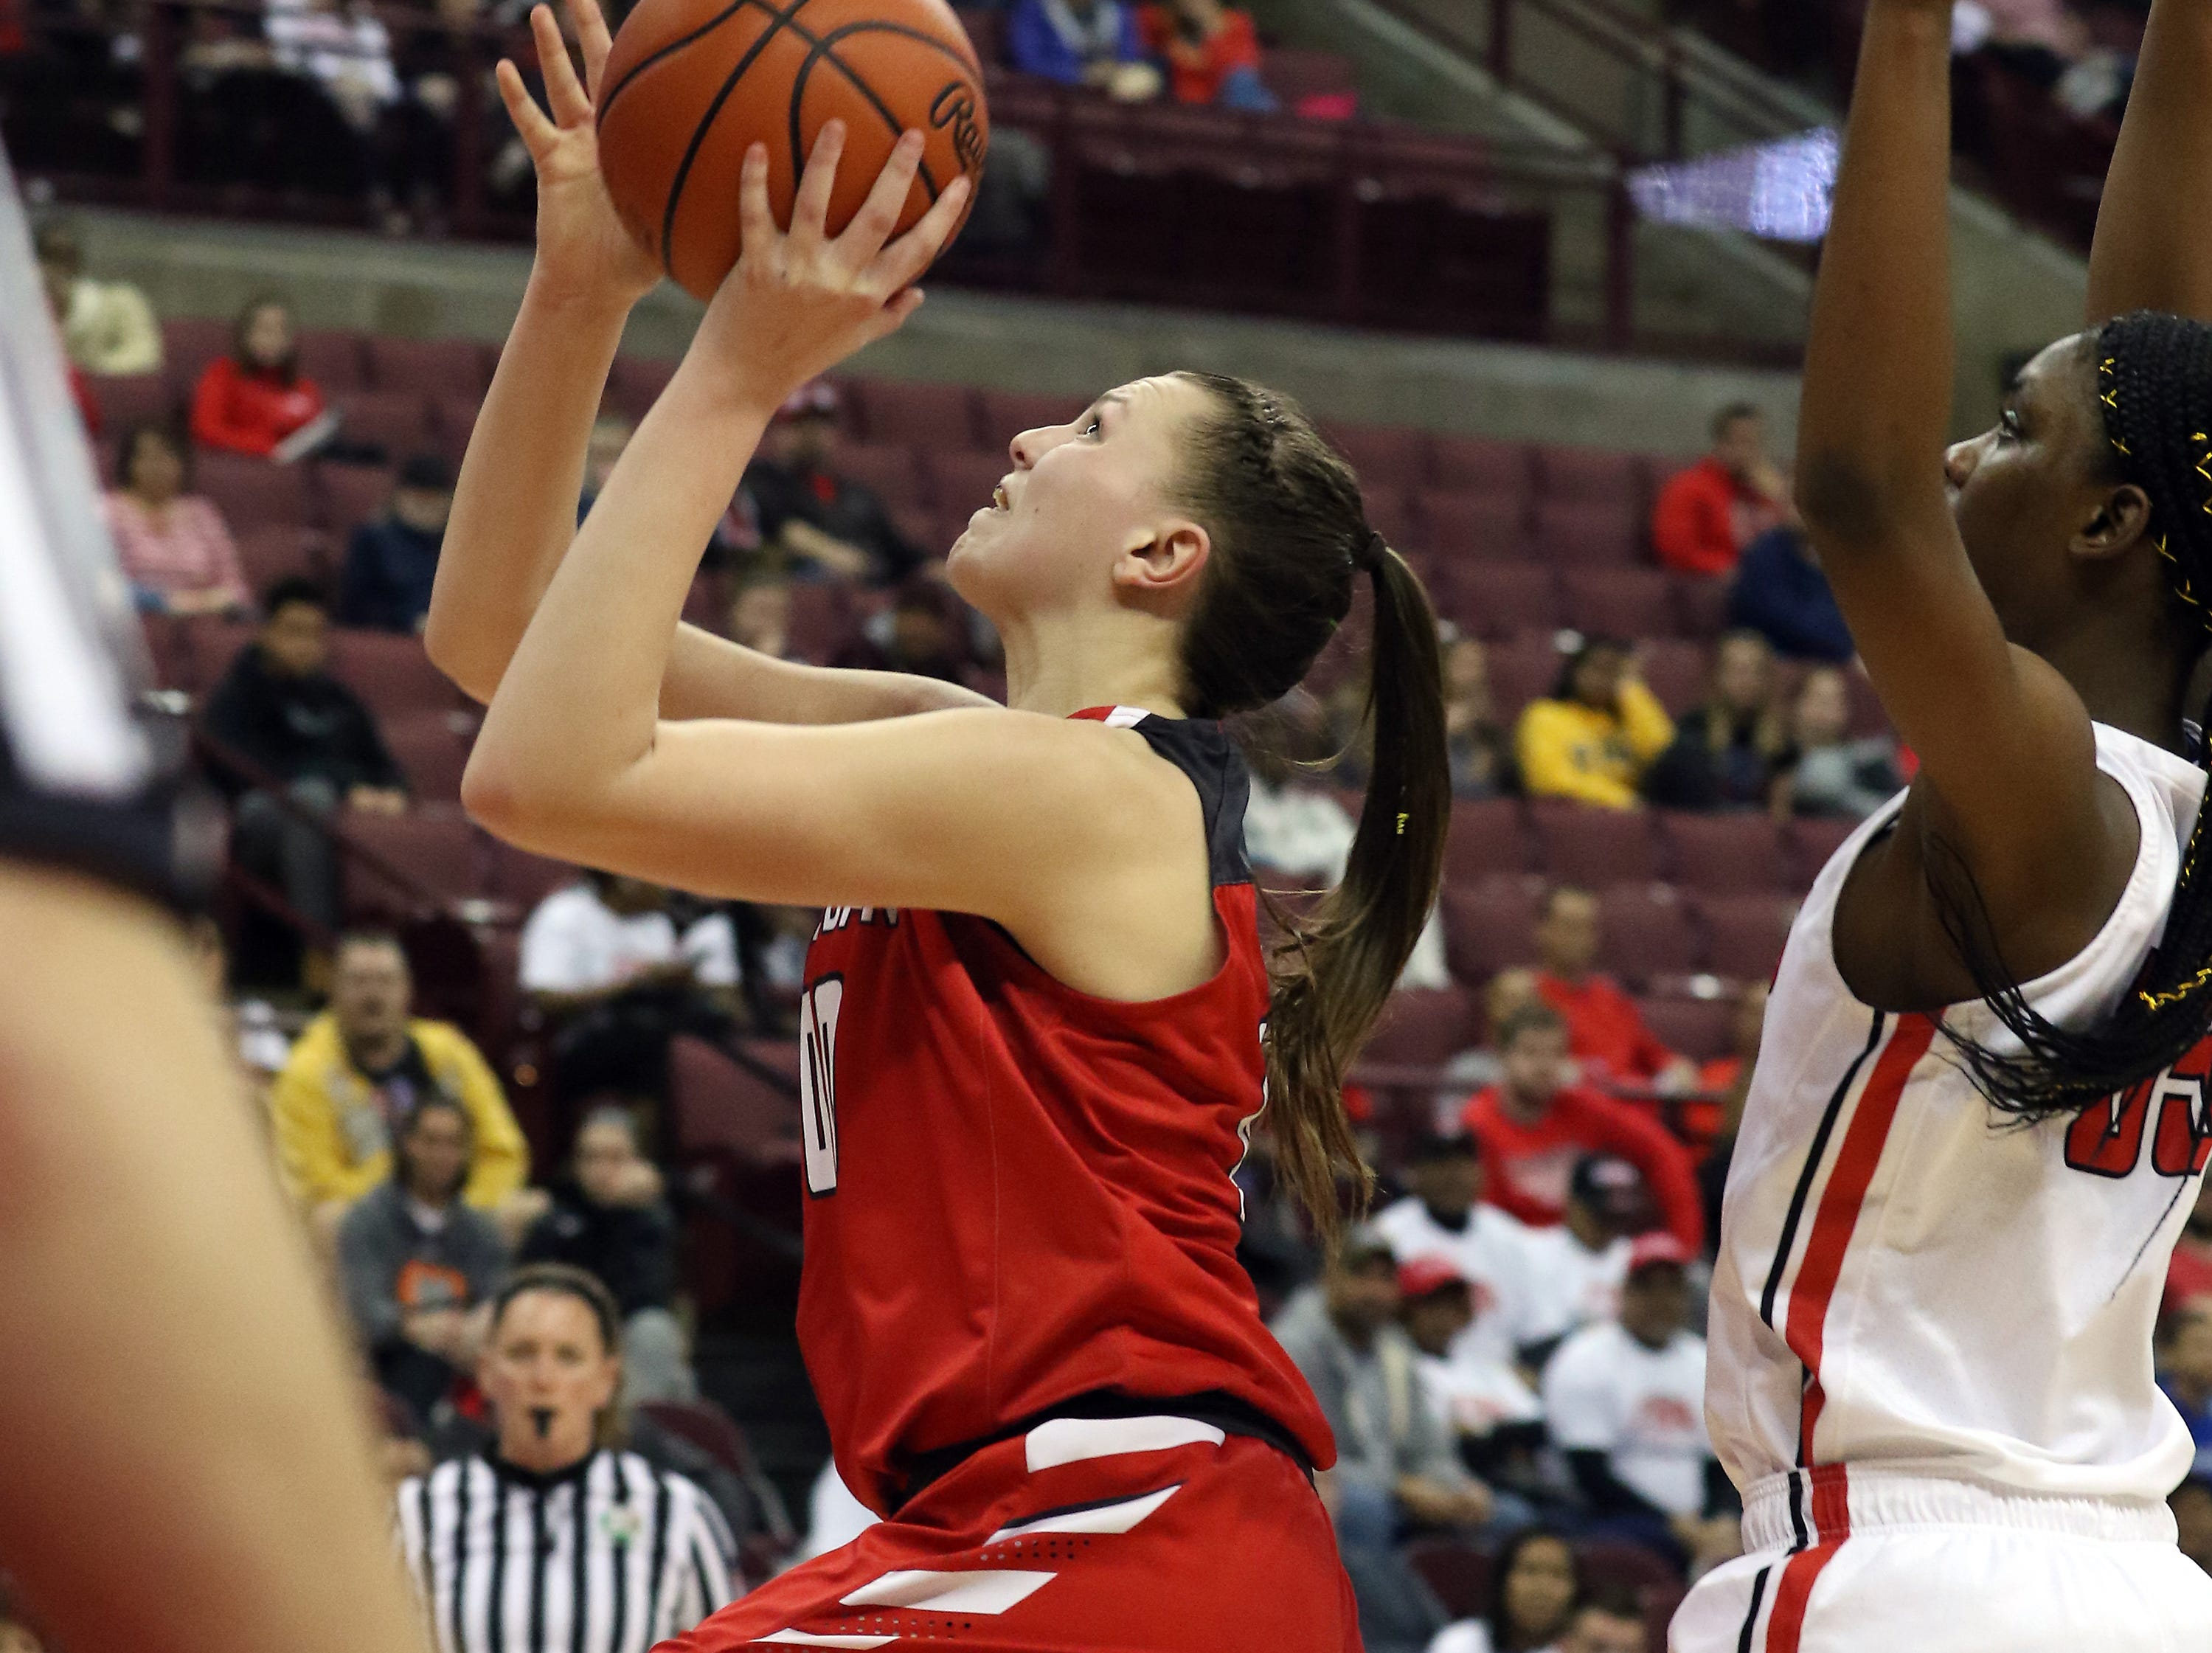 Sheridan's Faith Stinson puts up a shot against Toledo Rogers during the DII state semis in Columbus on Thursday.